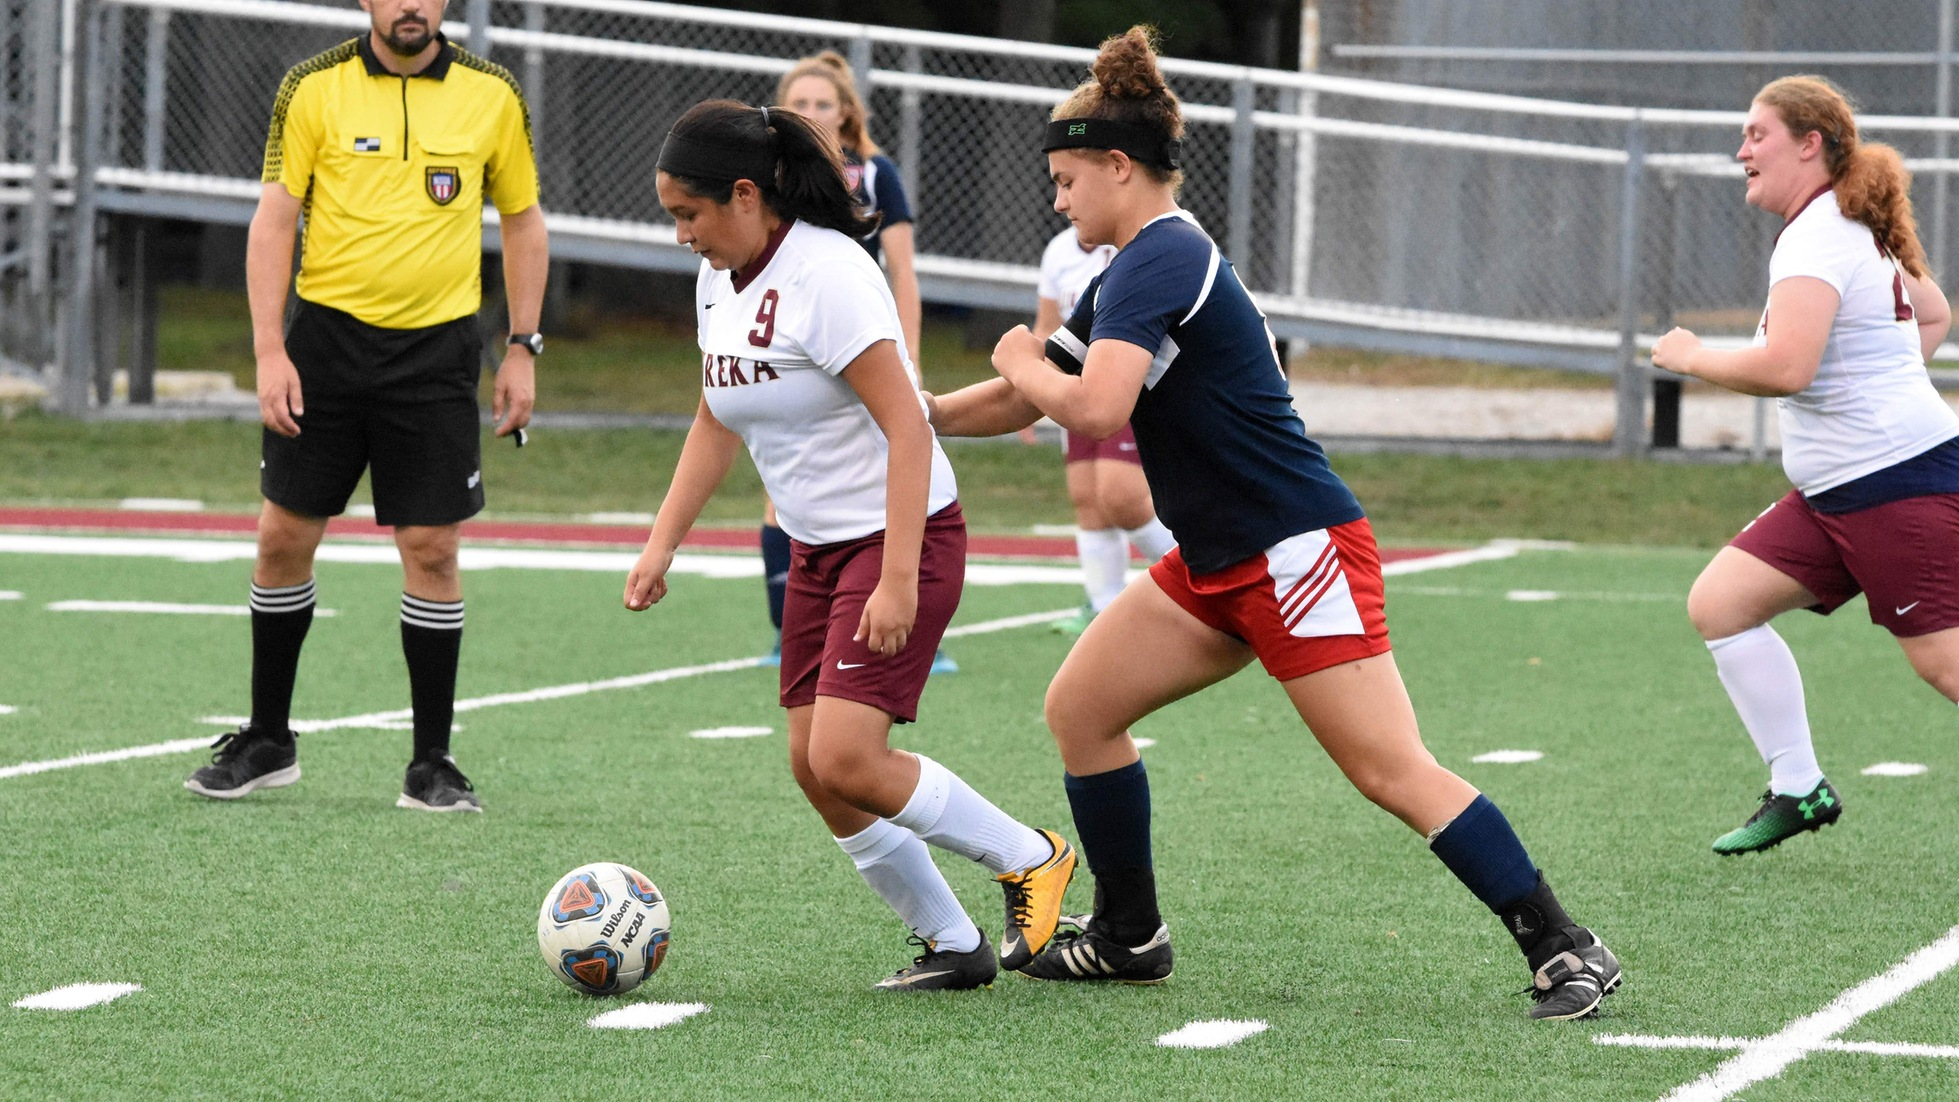 Faith Baptist Bible Prevails Over Red Devils, 4-0